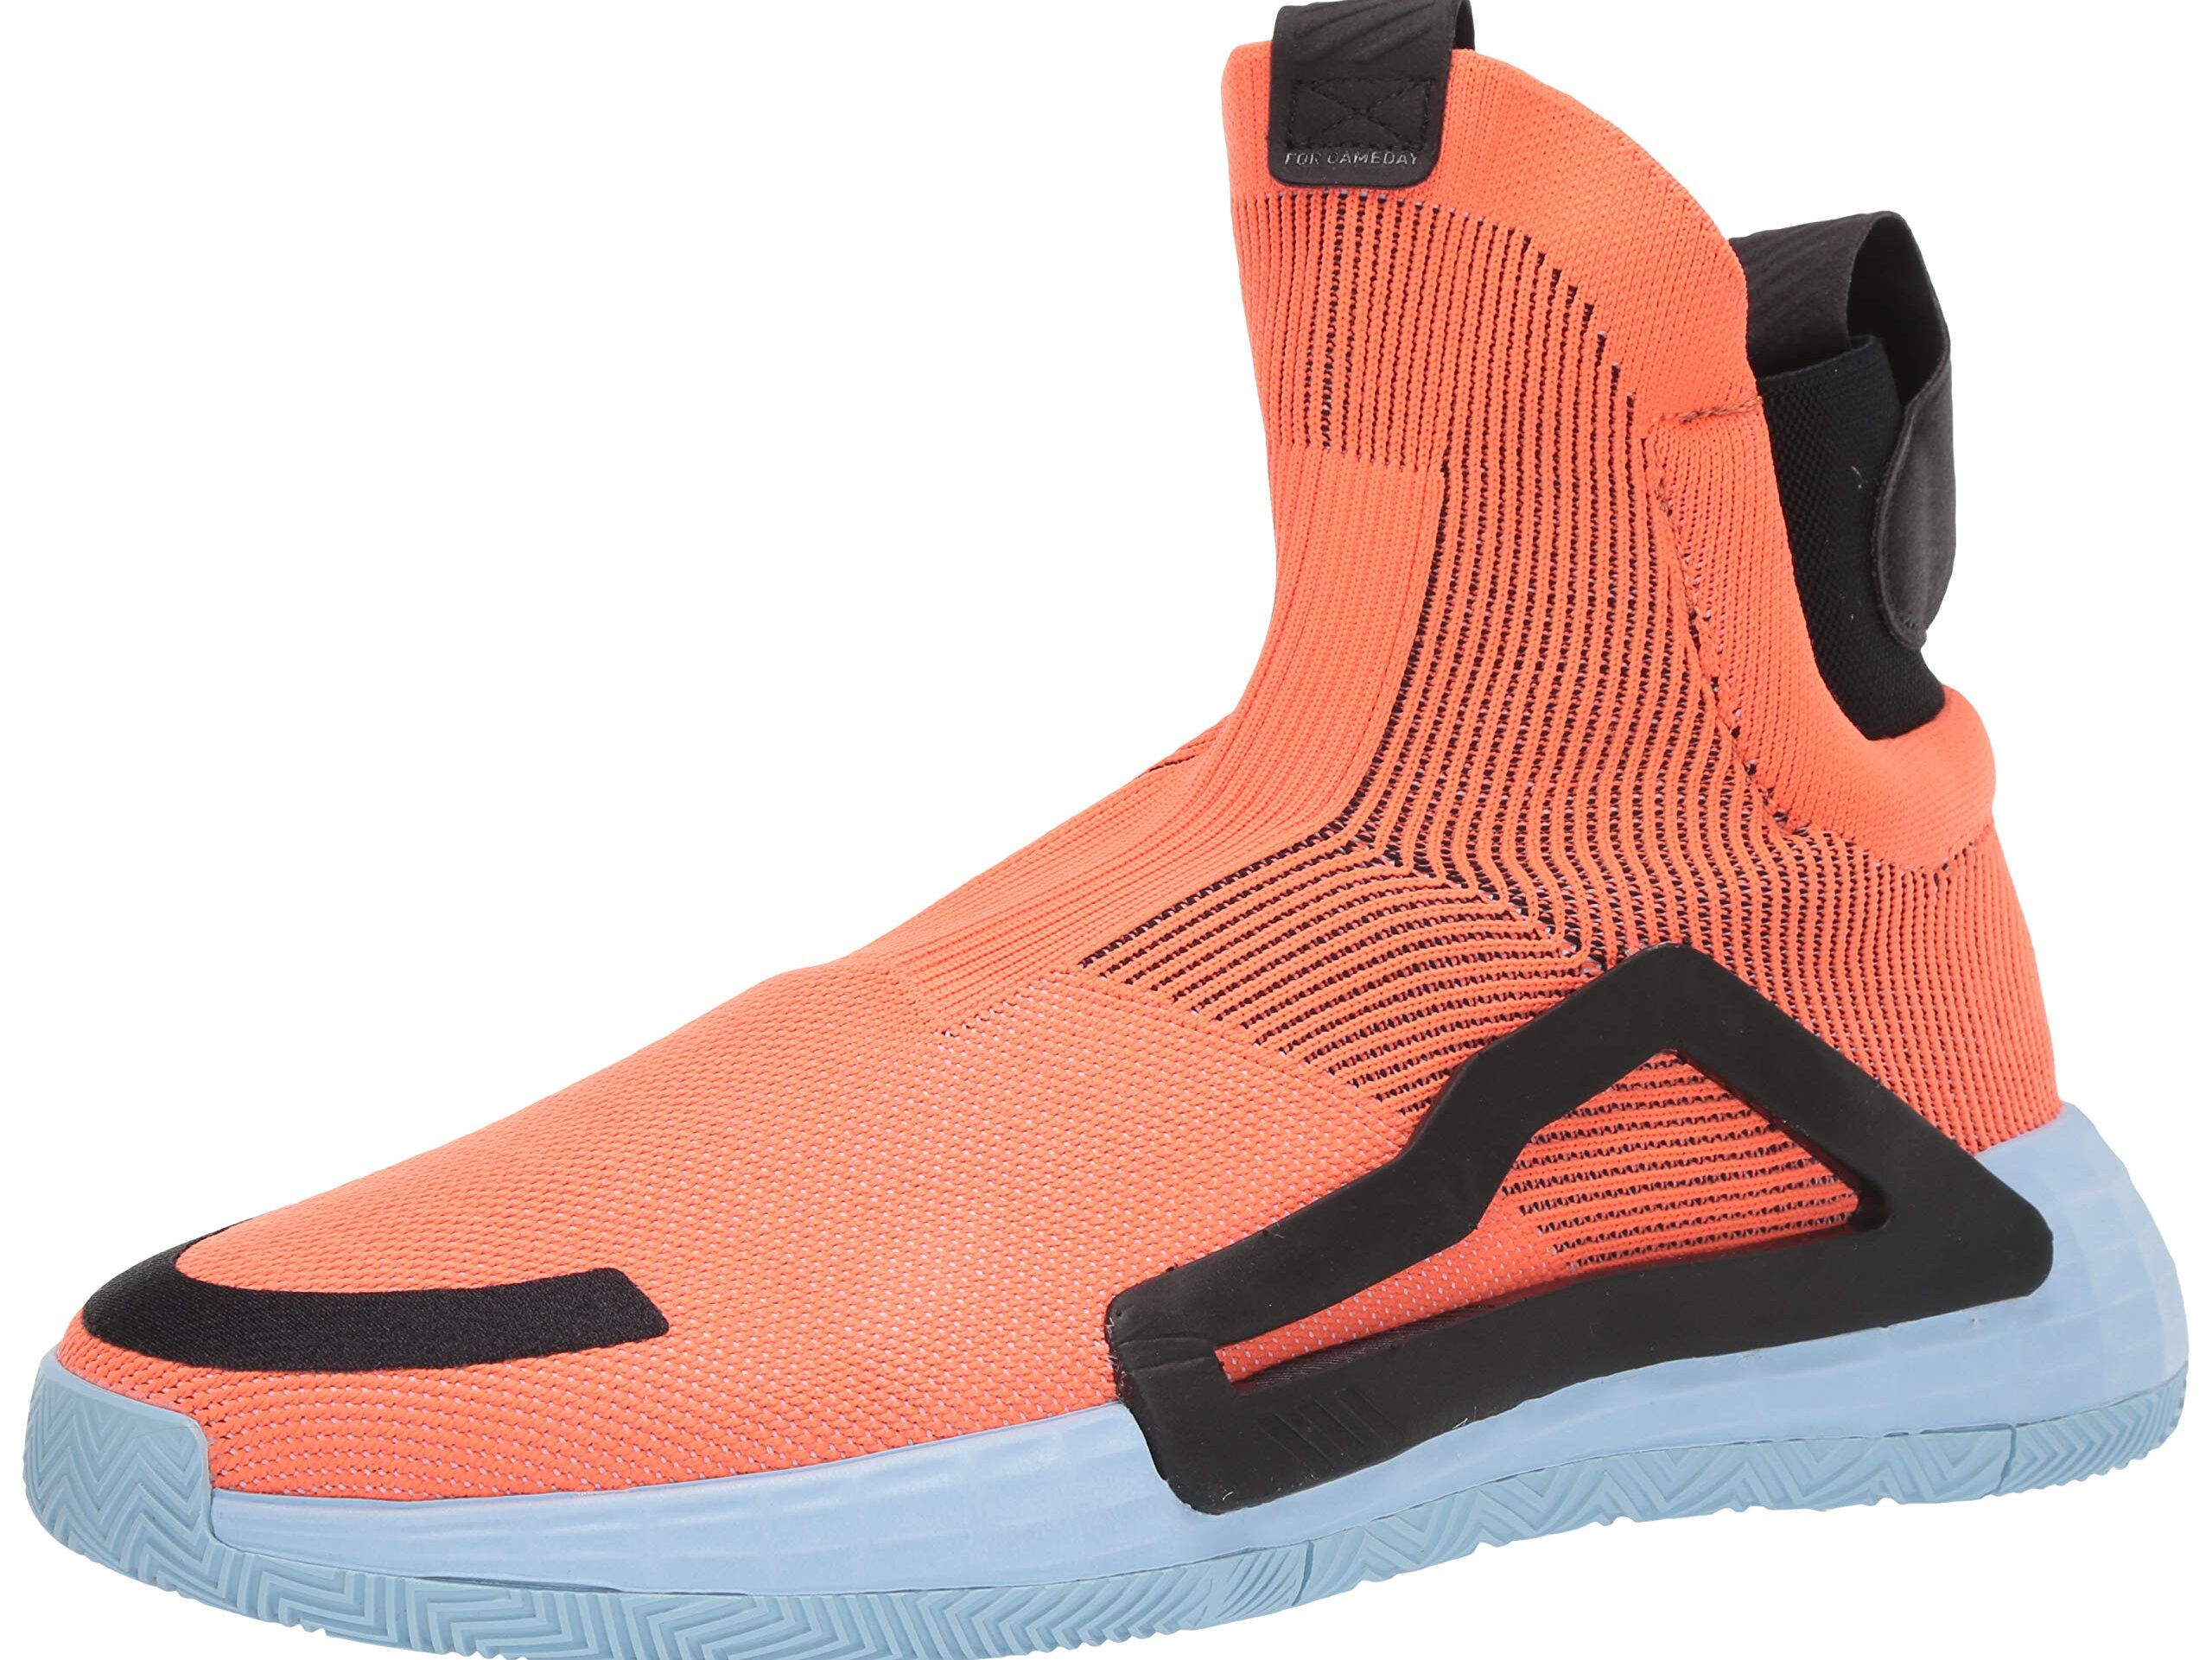 The 10 Best Basketball Shoes for Ankle Support in 2020